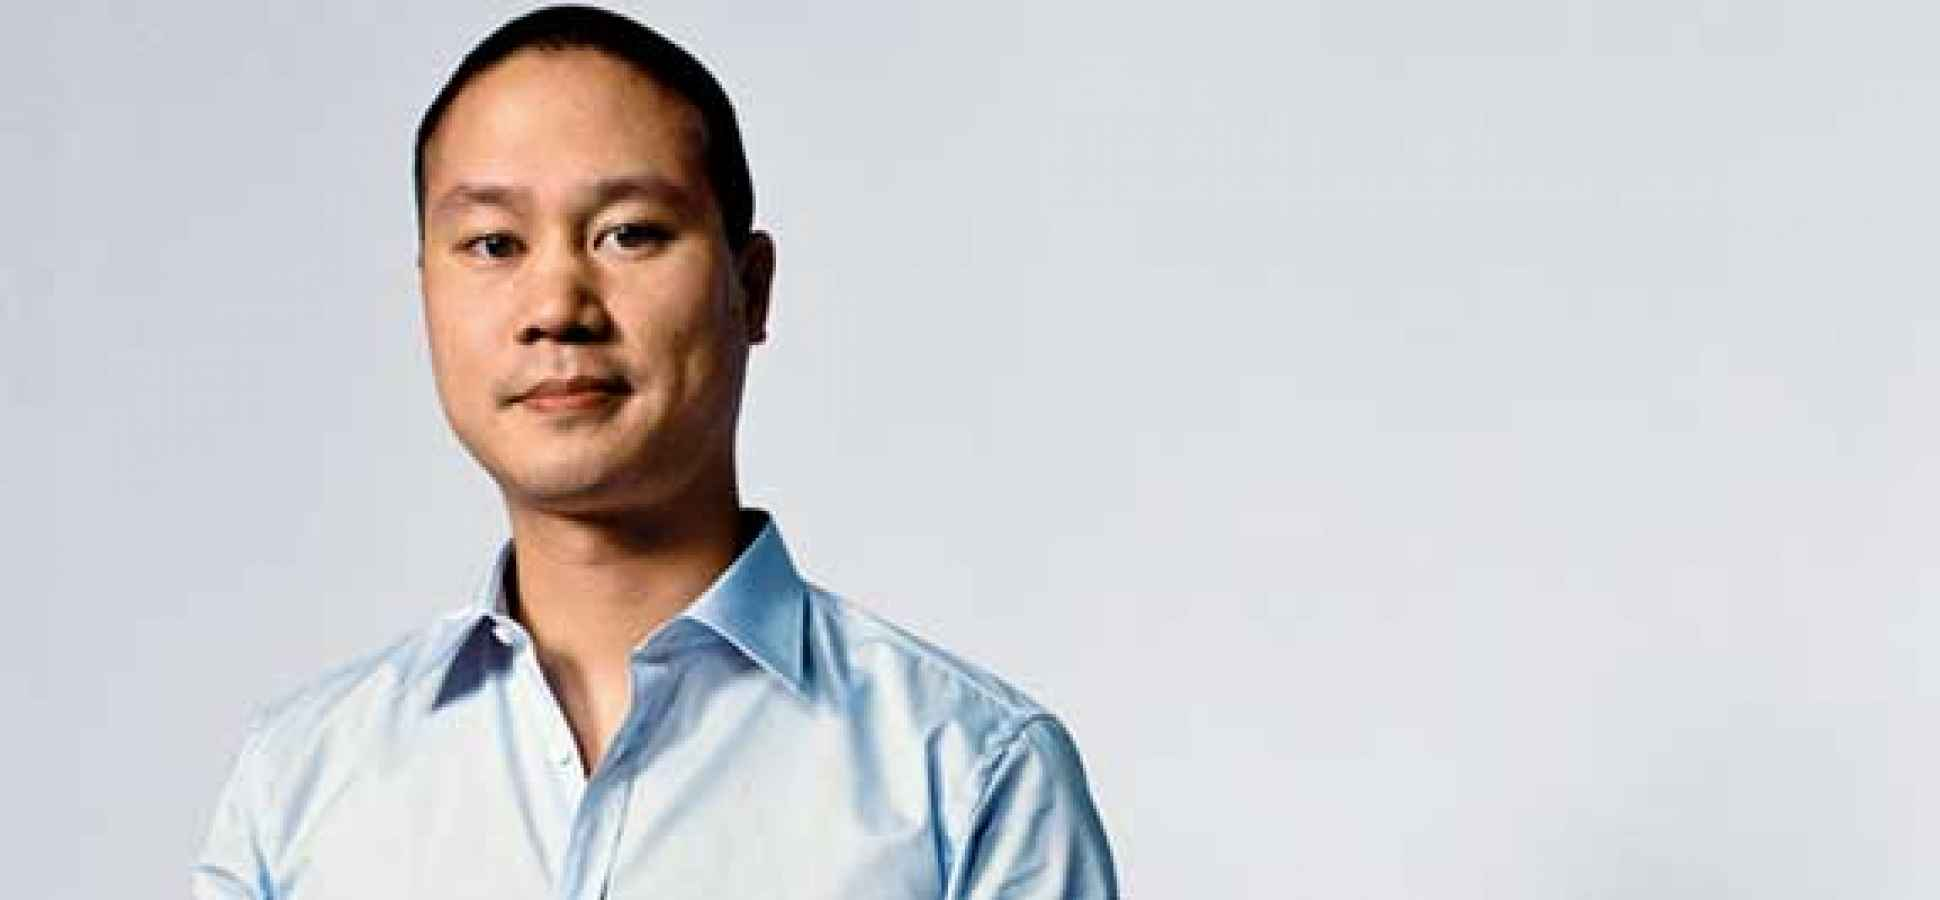 Most startup teams would love to have the culture that Tony Hsieh built.